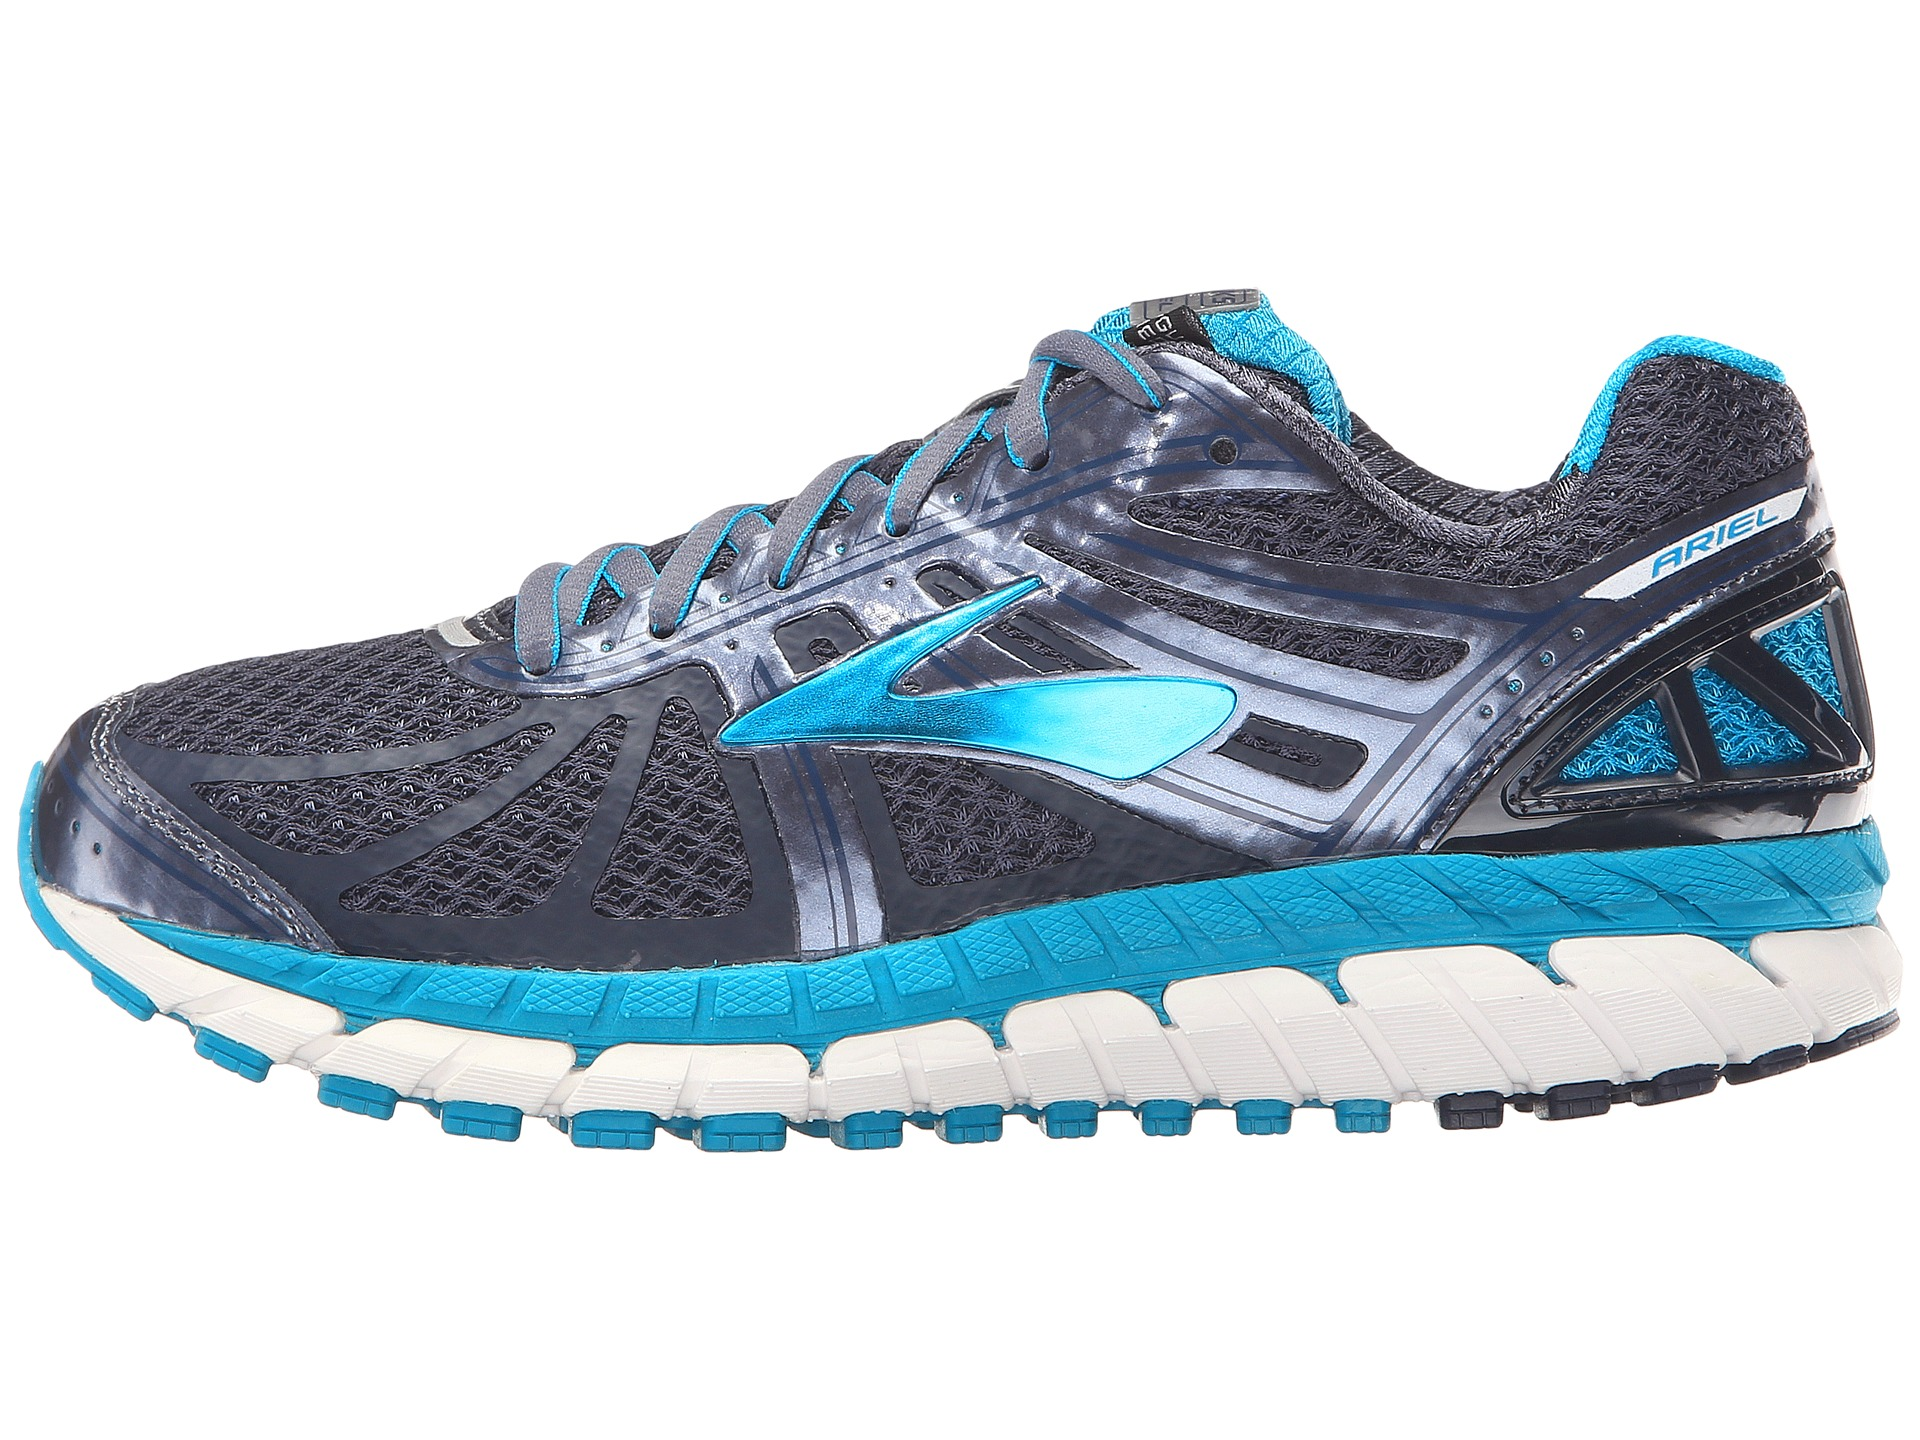 Brooks Ariel '16 - Zappos.com Free Shipping BOTH Ways